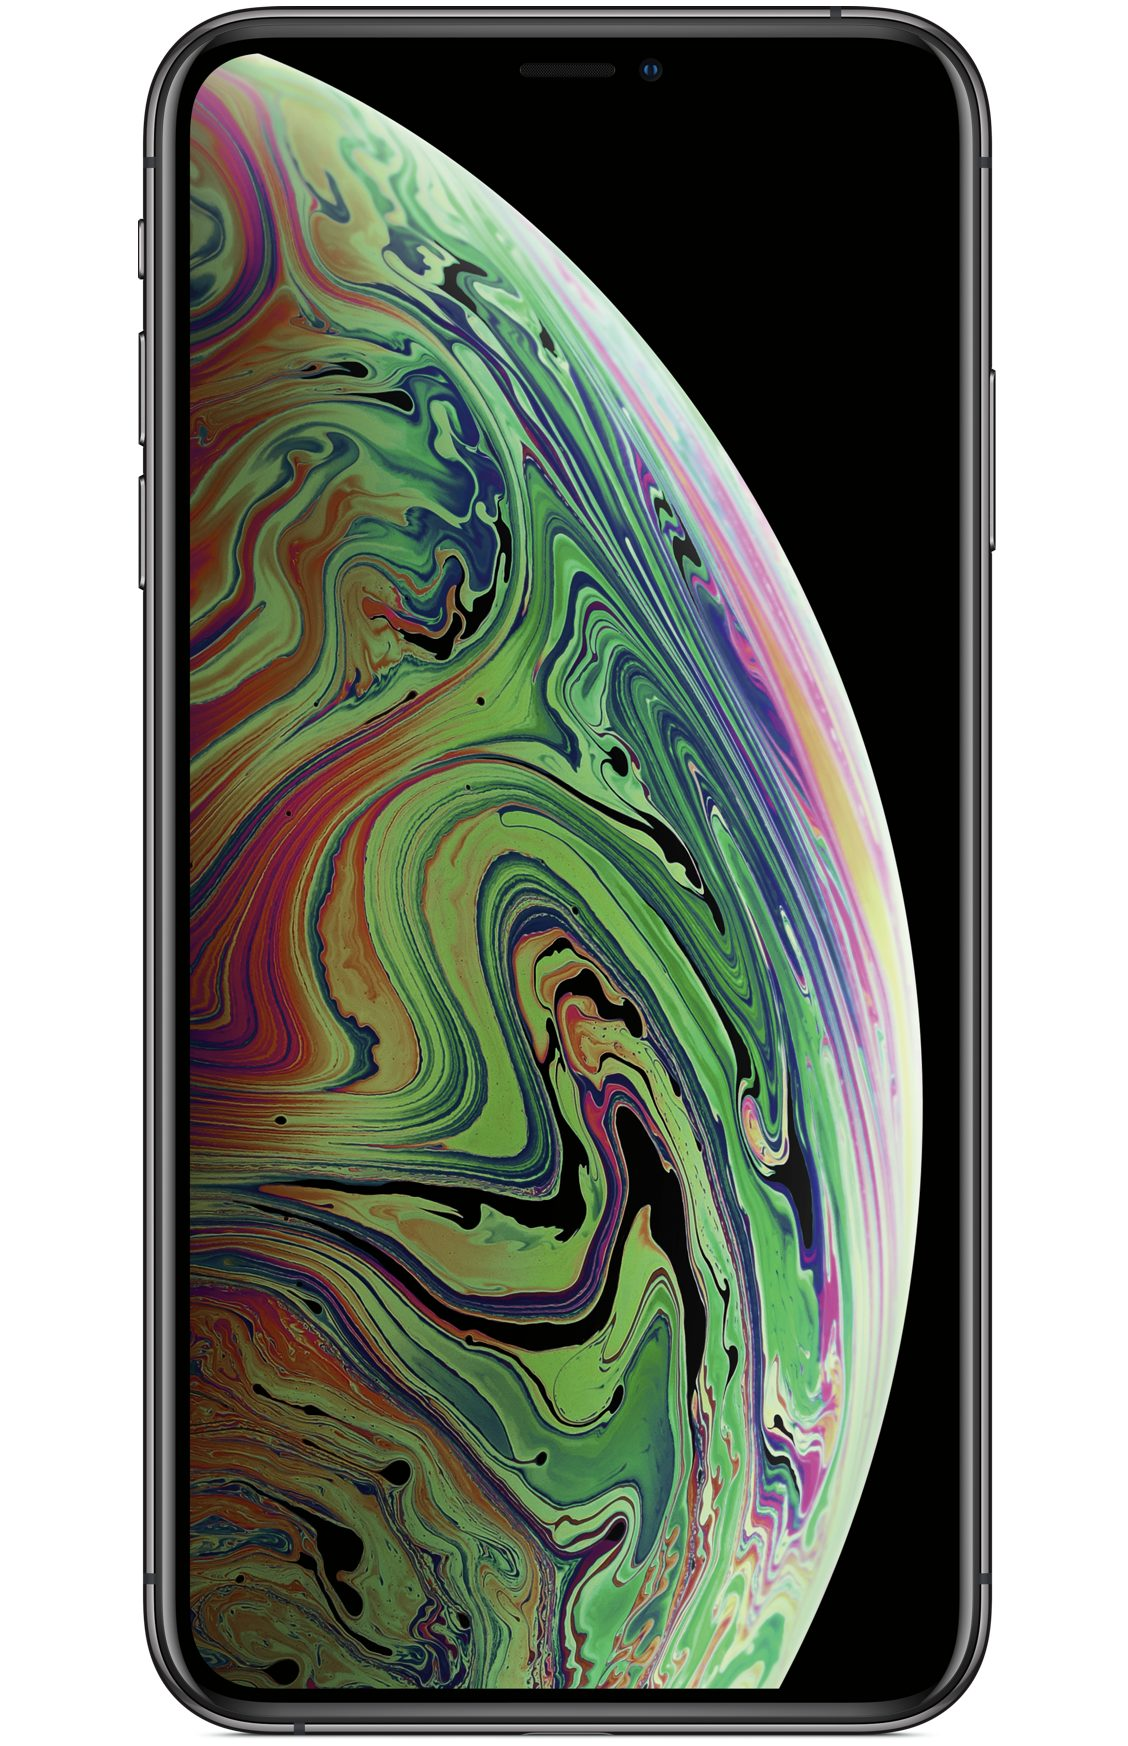 Save $100 on new iPhone Xs Max